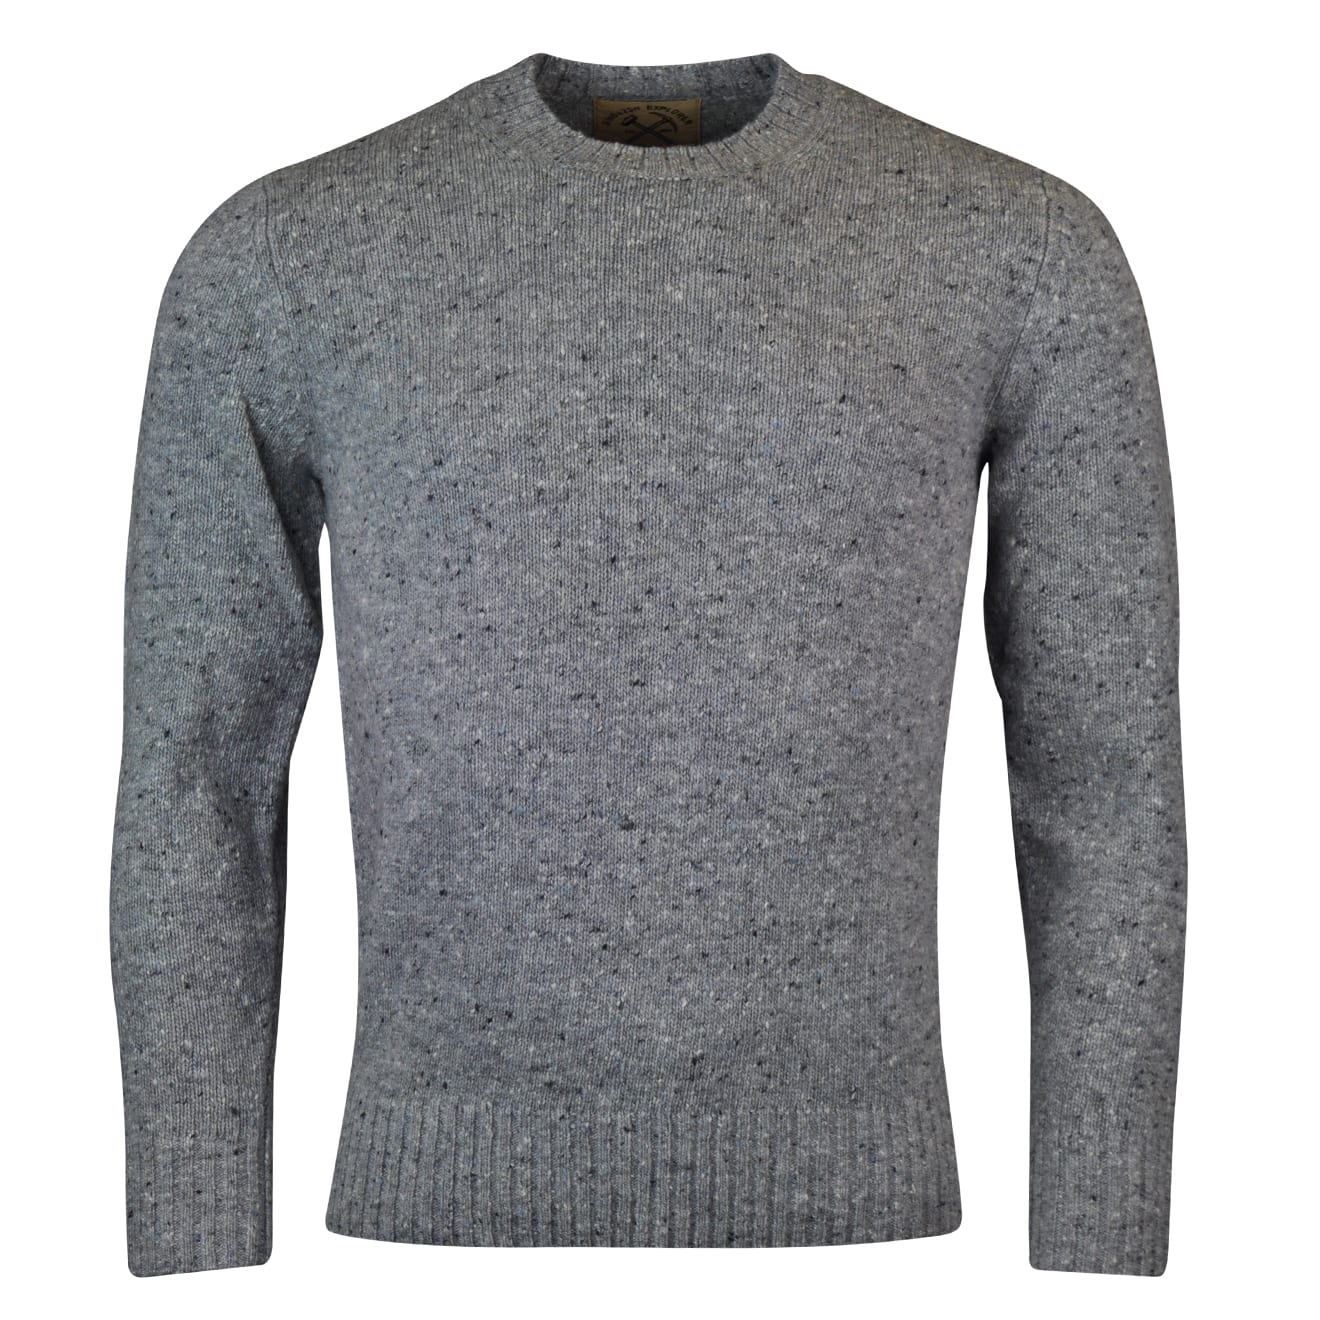 Alan Paine strone donegal crew neck knit jumper silver 2